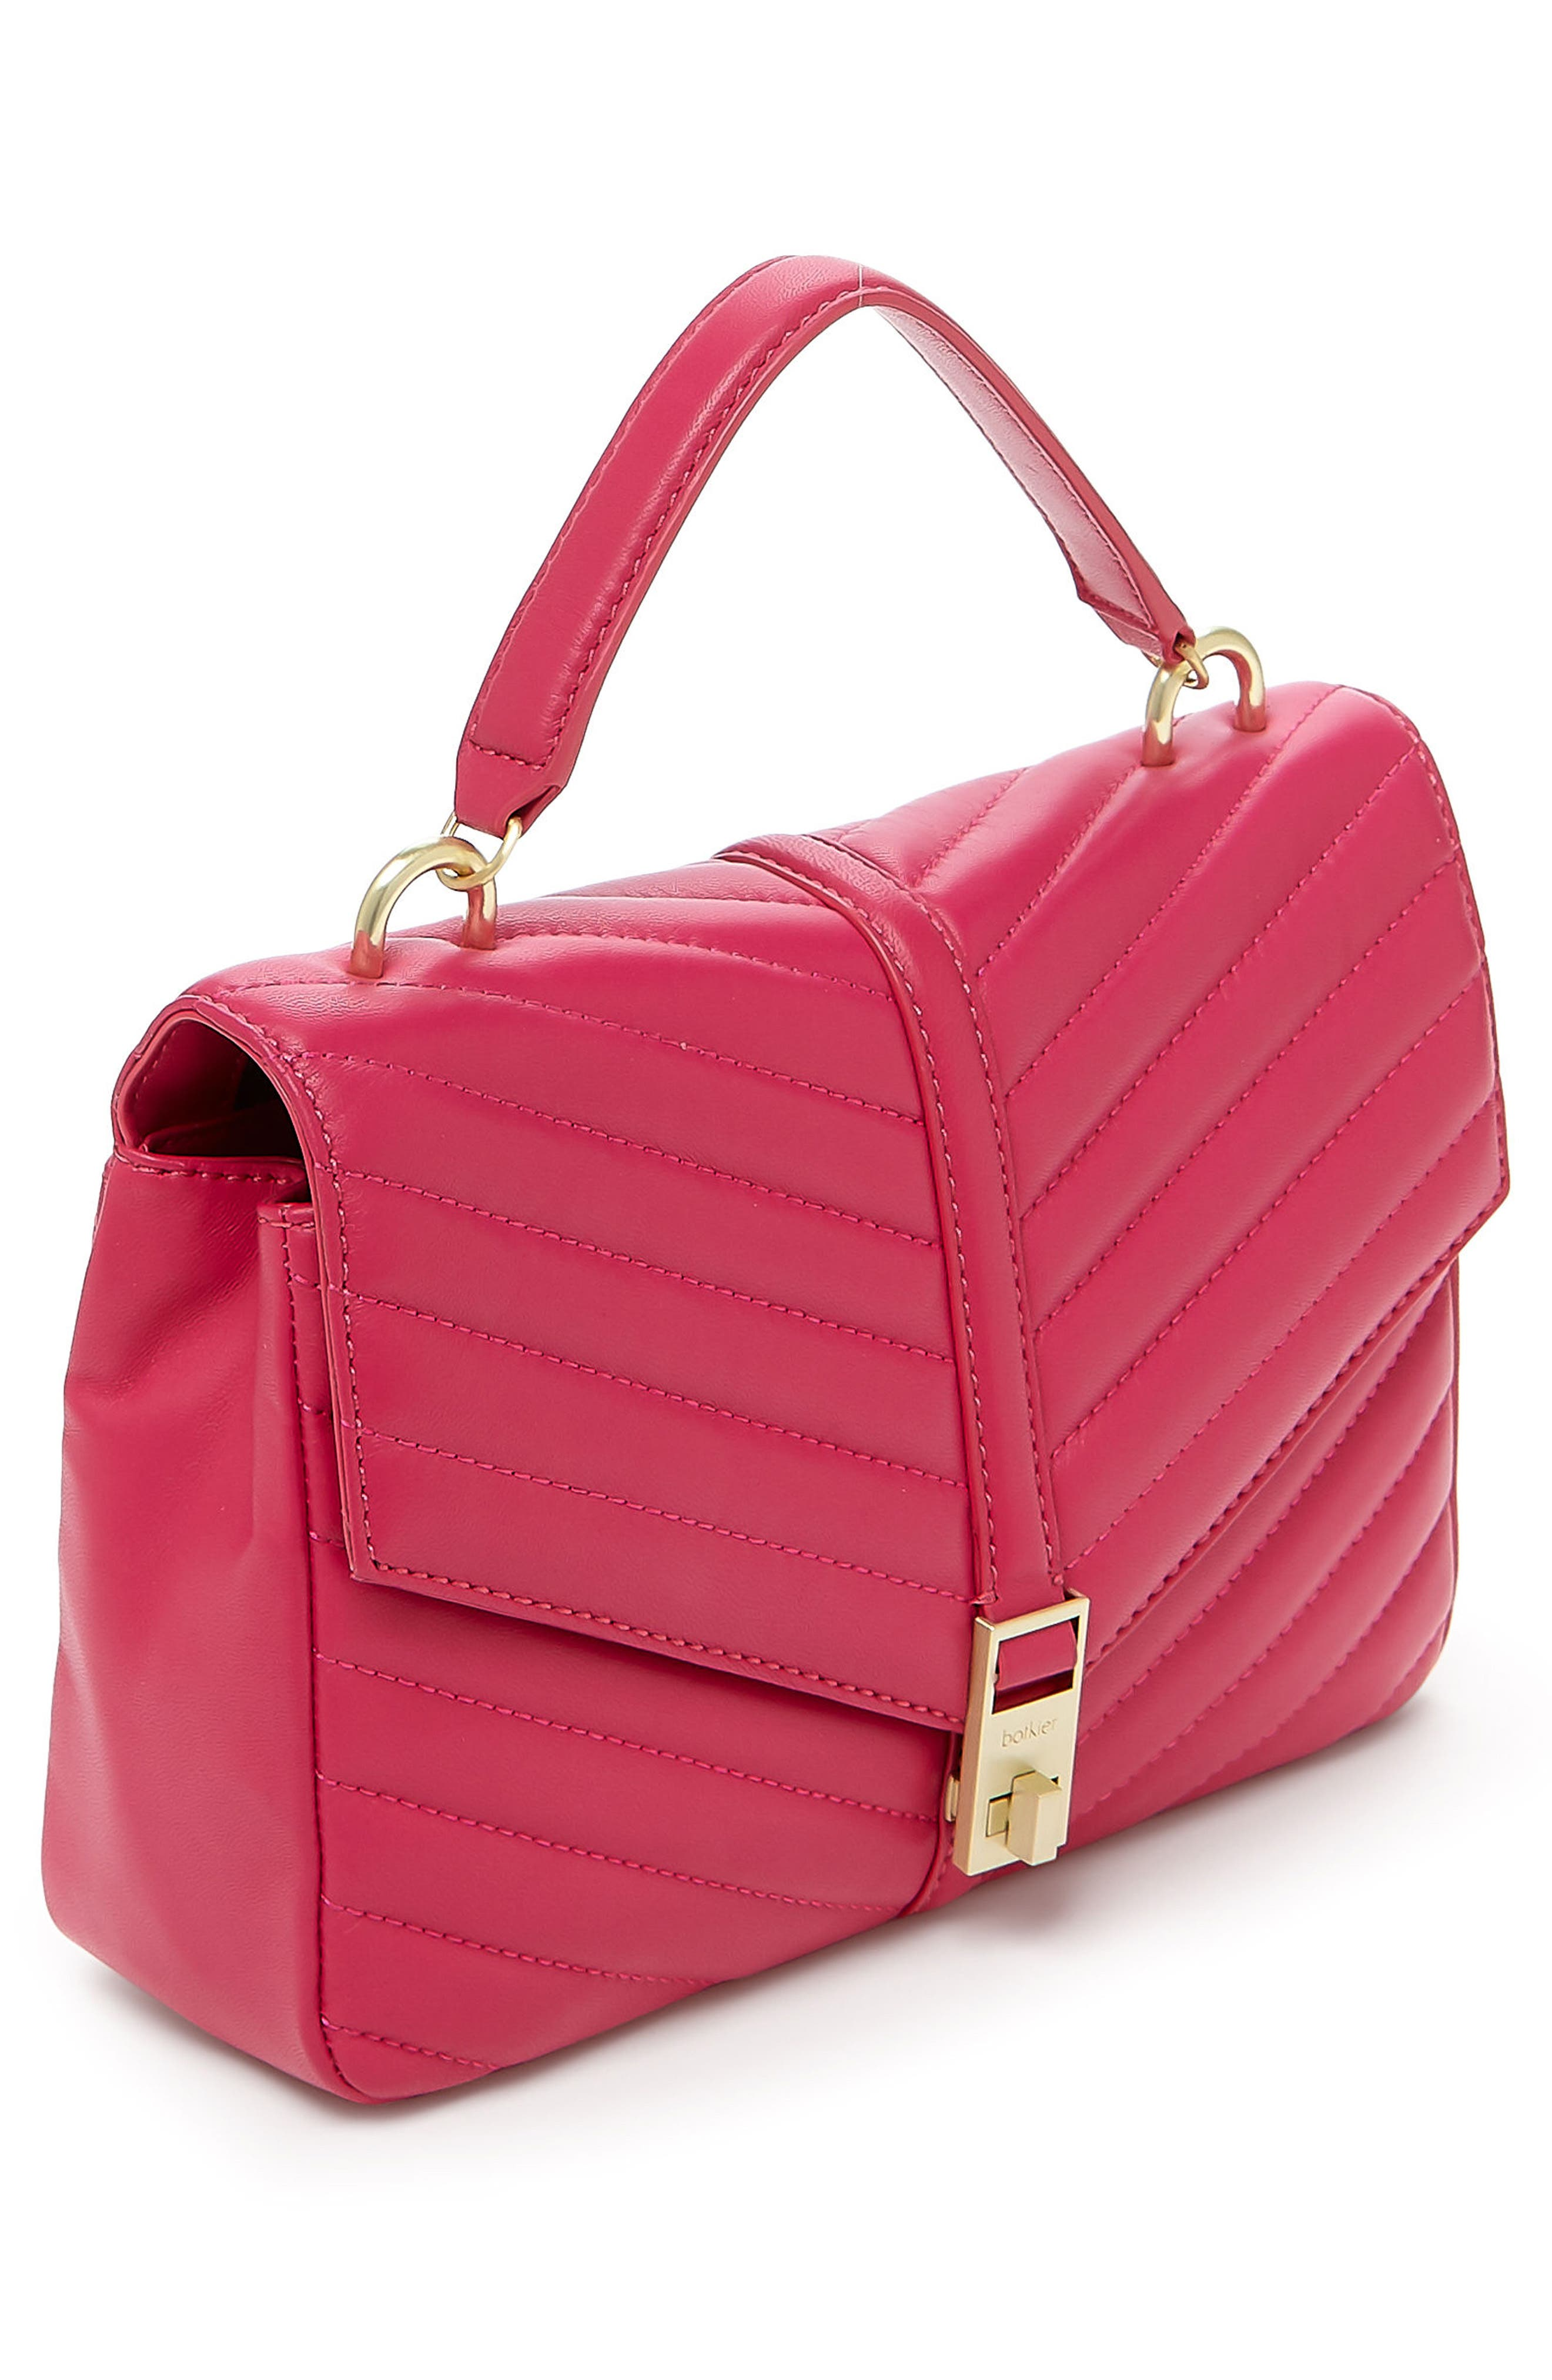 Dakota Quilted Leather Top Handle Bag,                             Alternate thumbnail 4, color,                             Pink